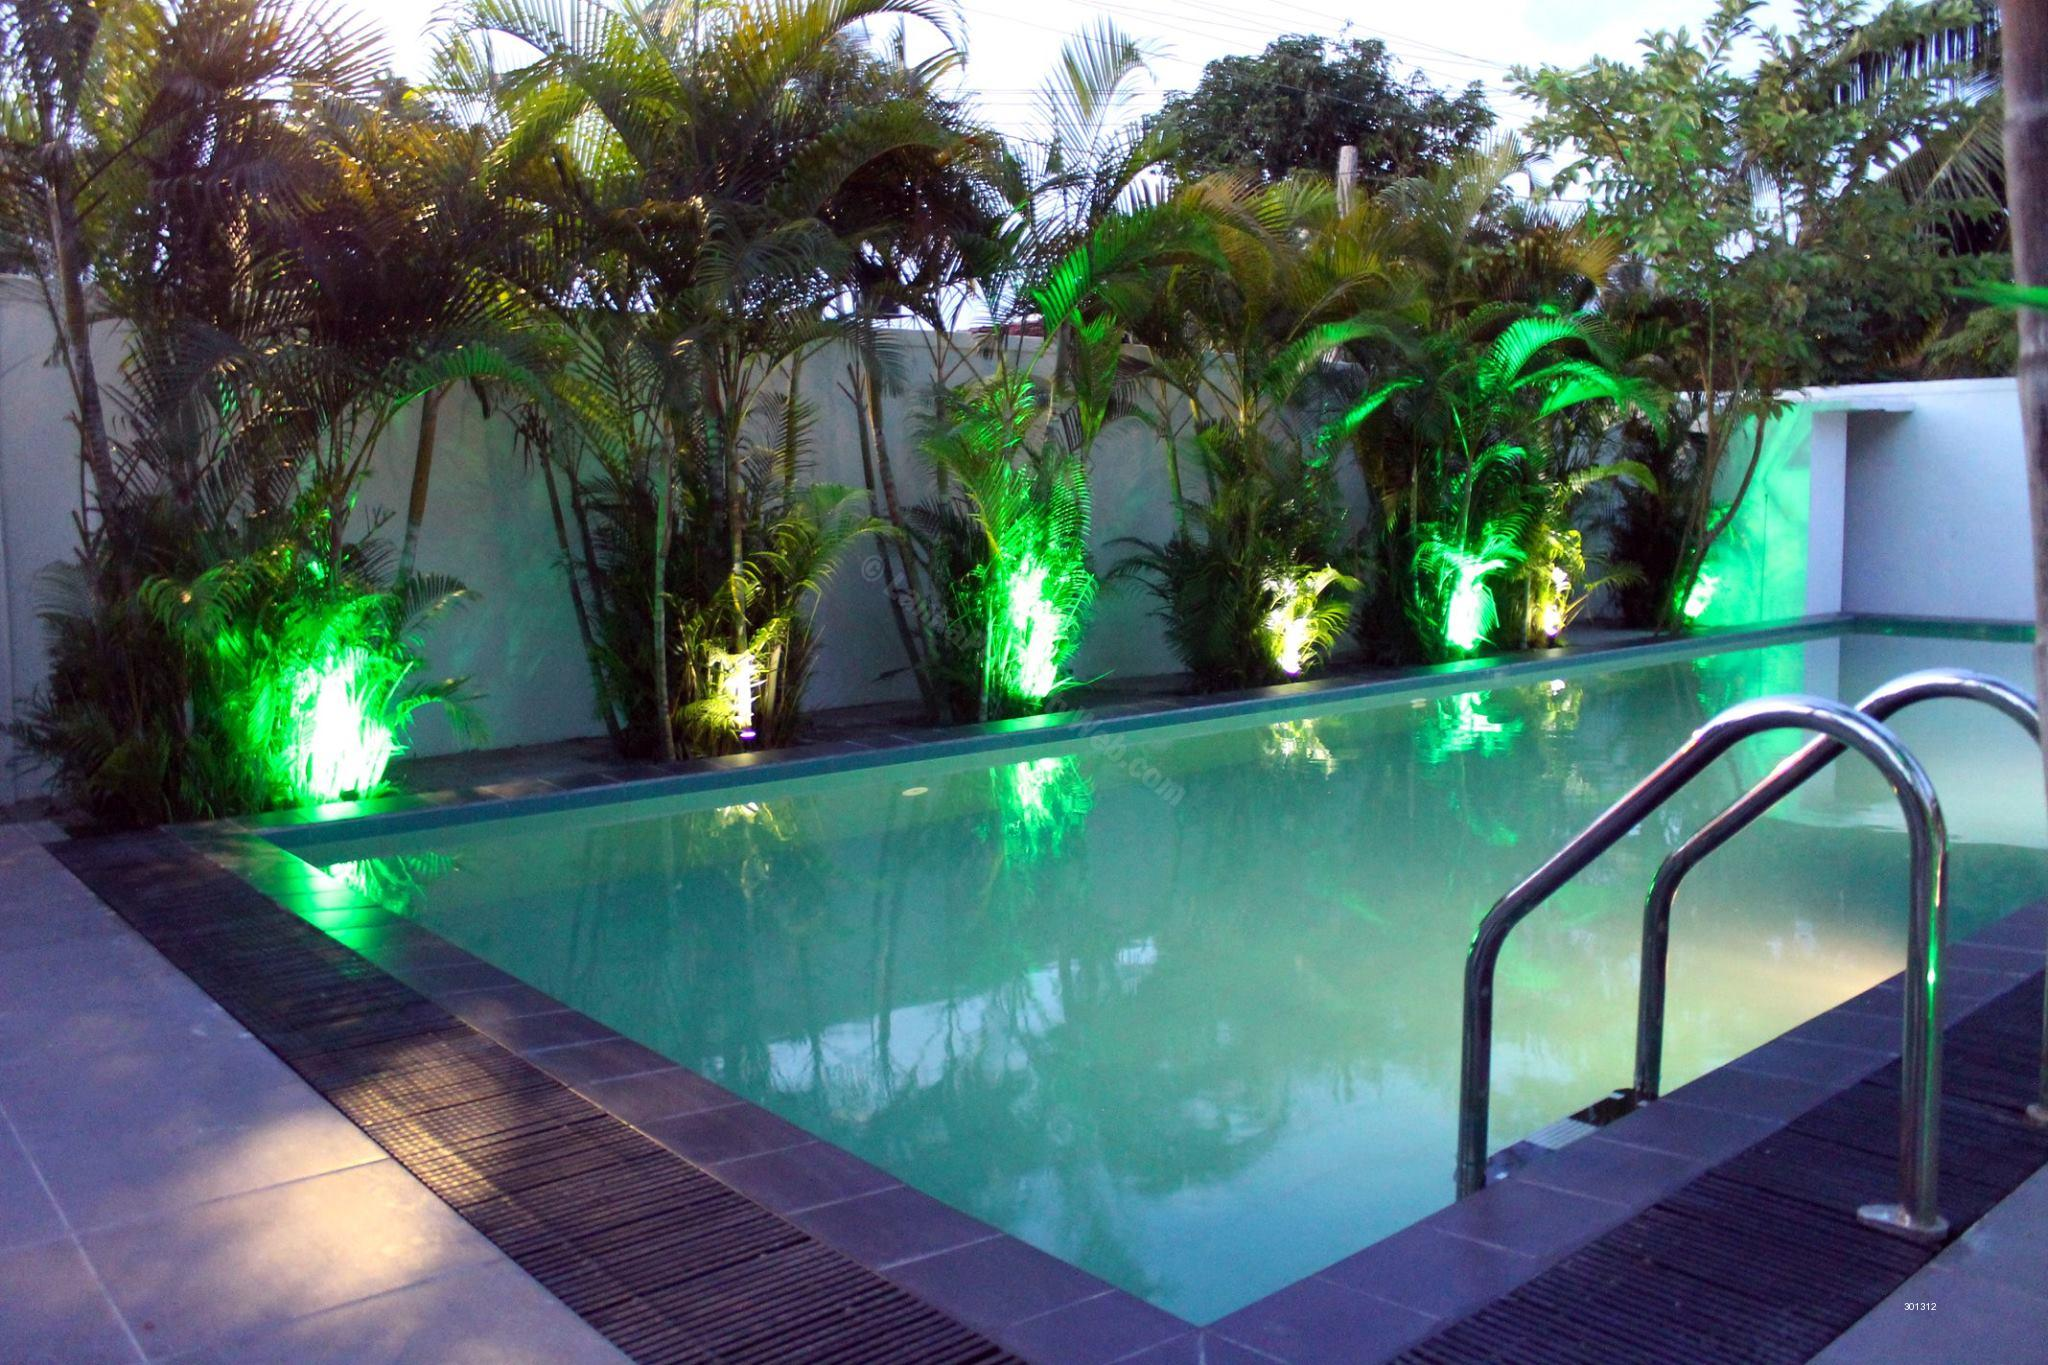 House for rent in Negombo - House with a pool for rent in Negombo